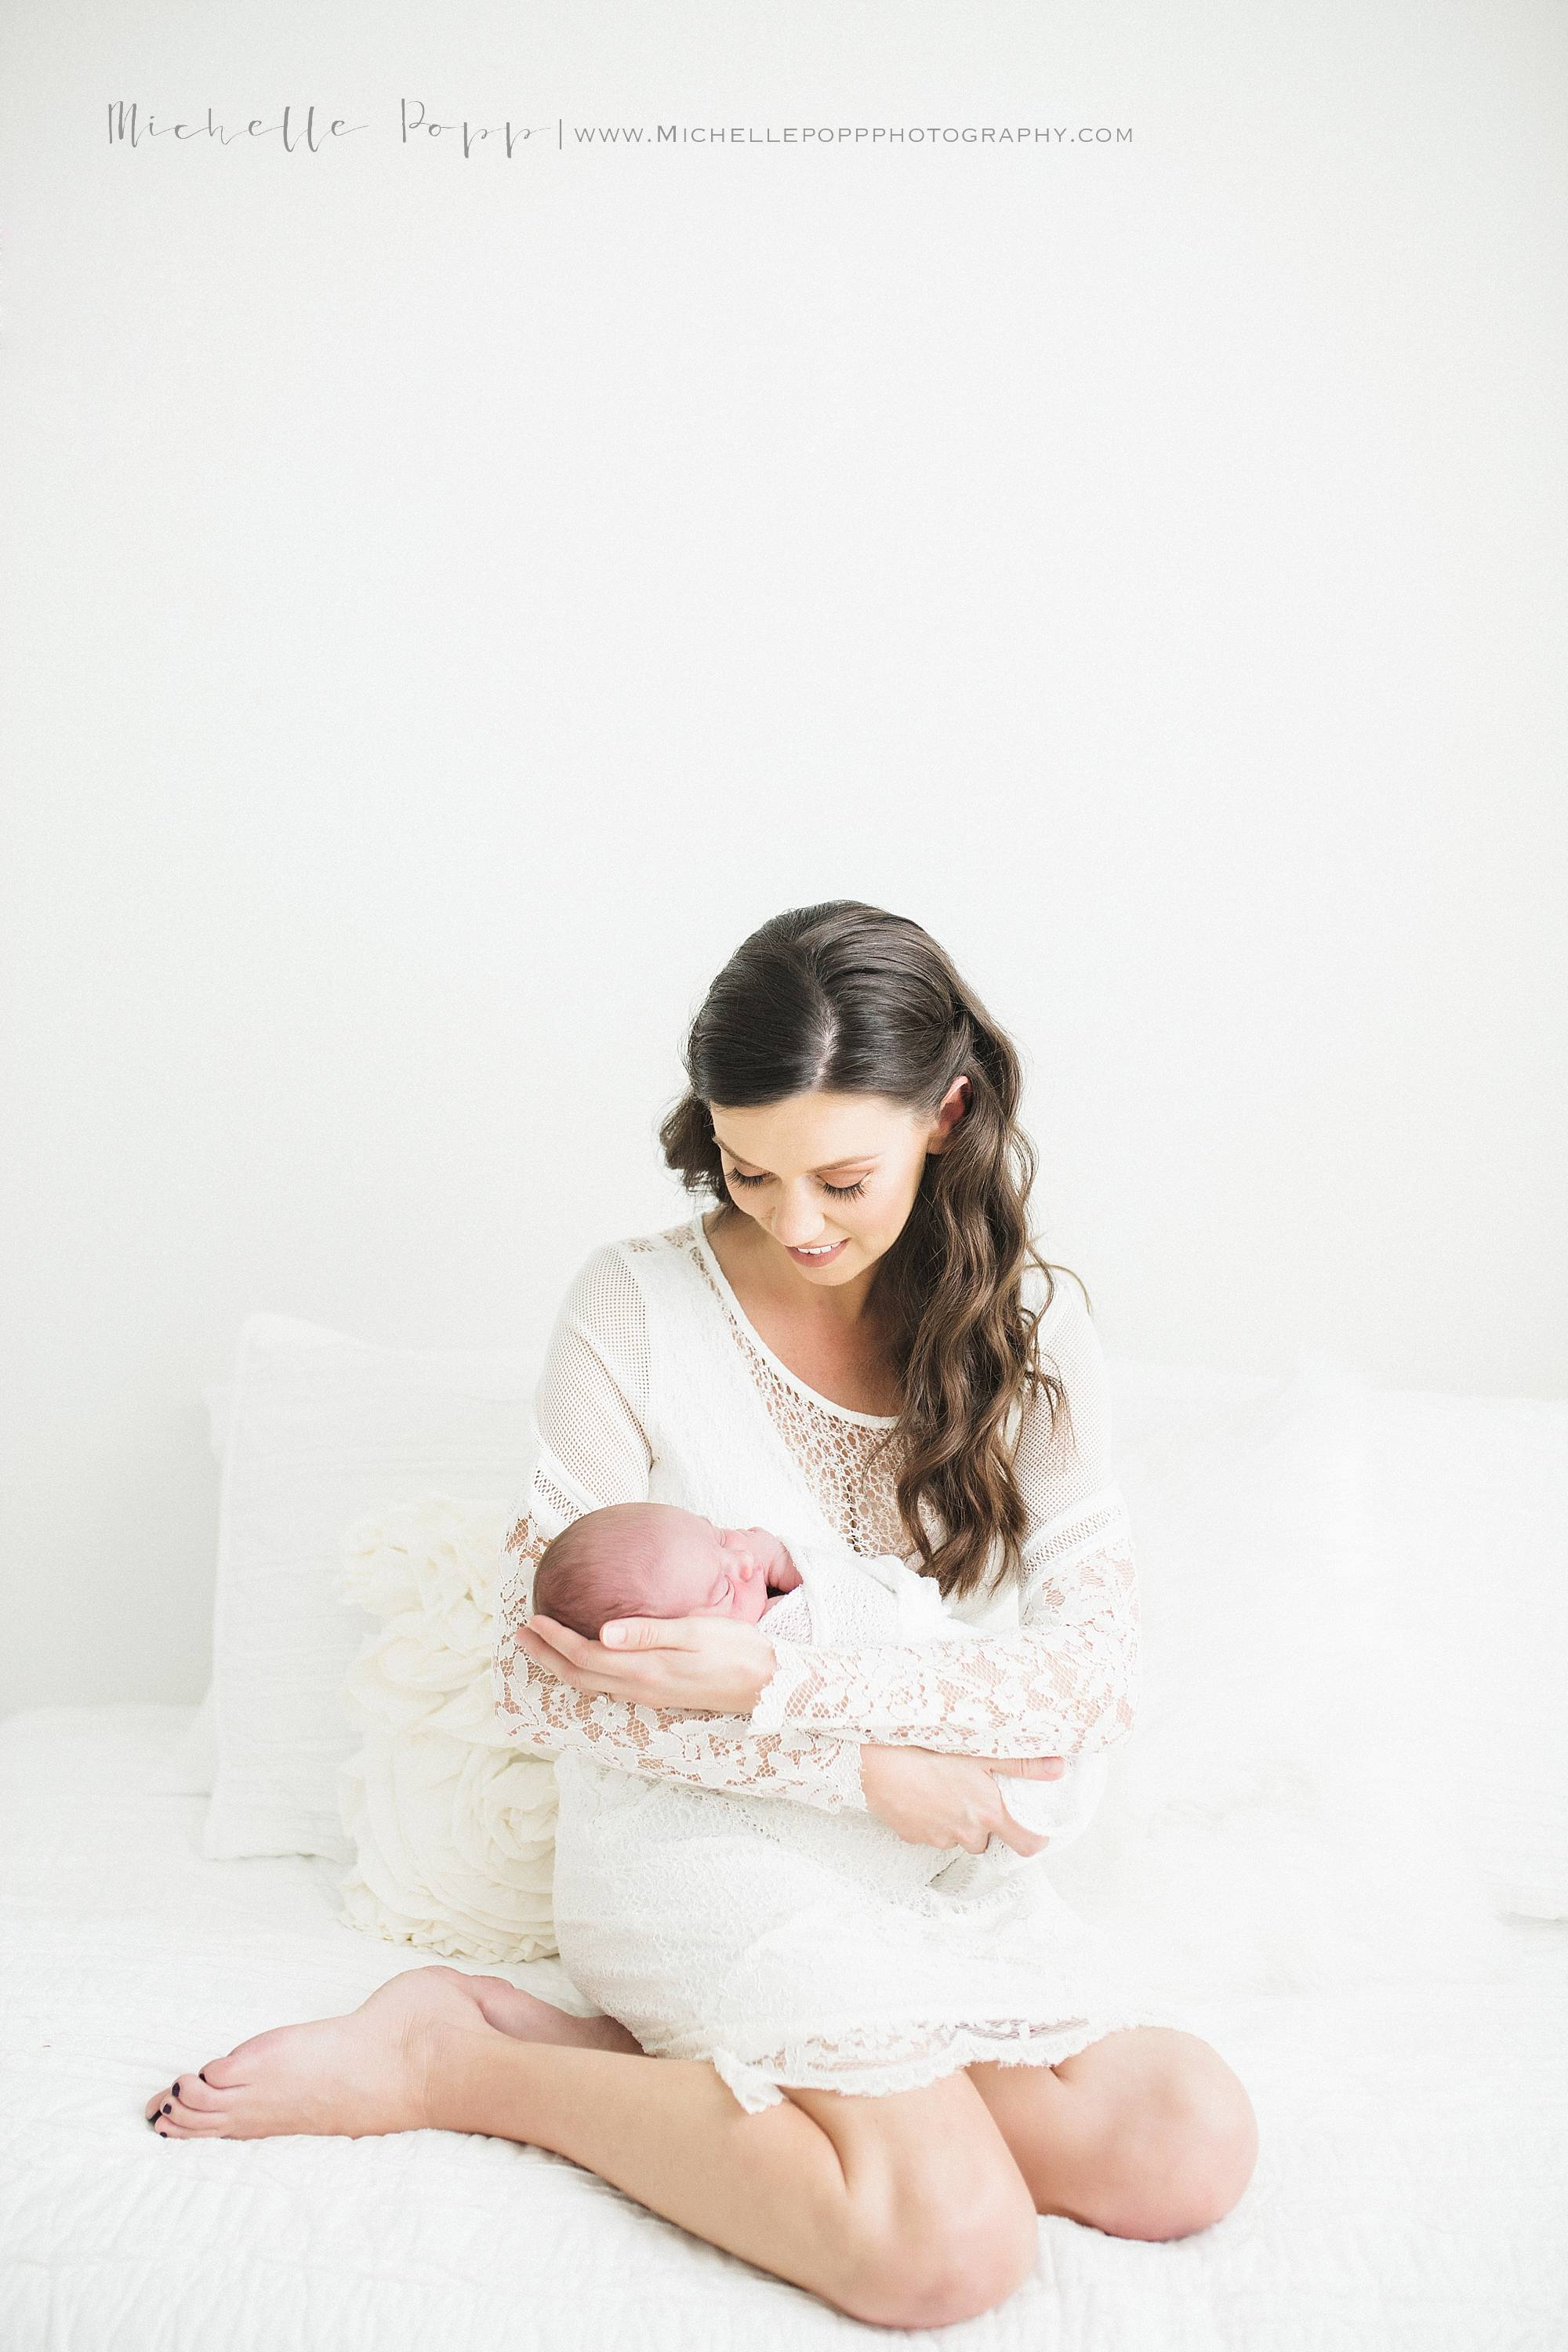 Mom in all white lace dress holding newborn baby